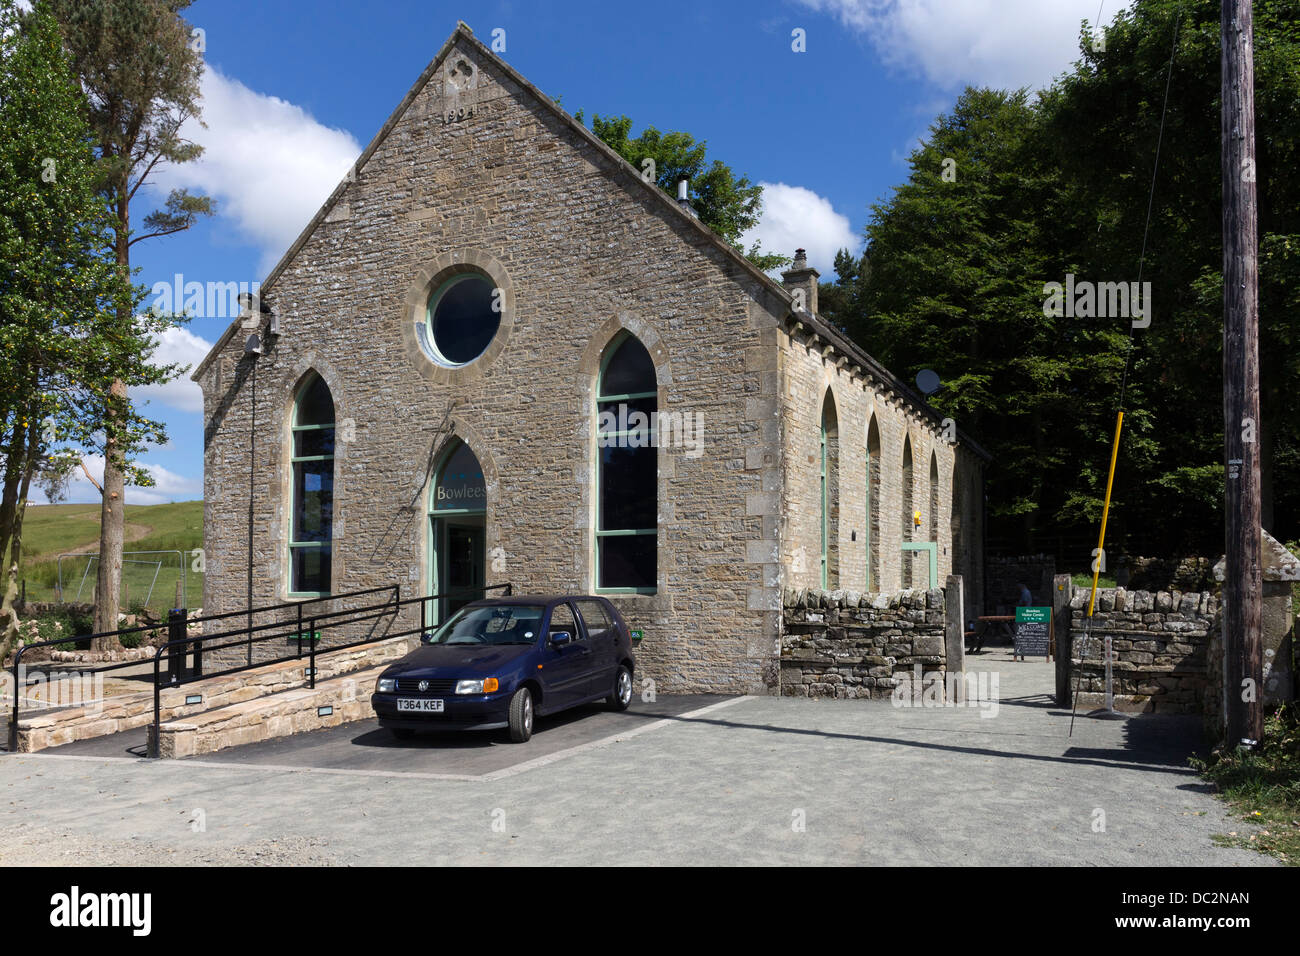 The Bowlees Visitor Centre in Upper Teesdale County Durham UK - Stock Image